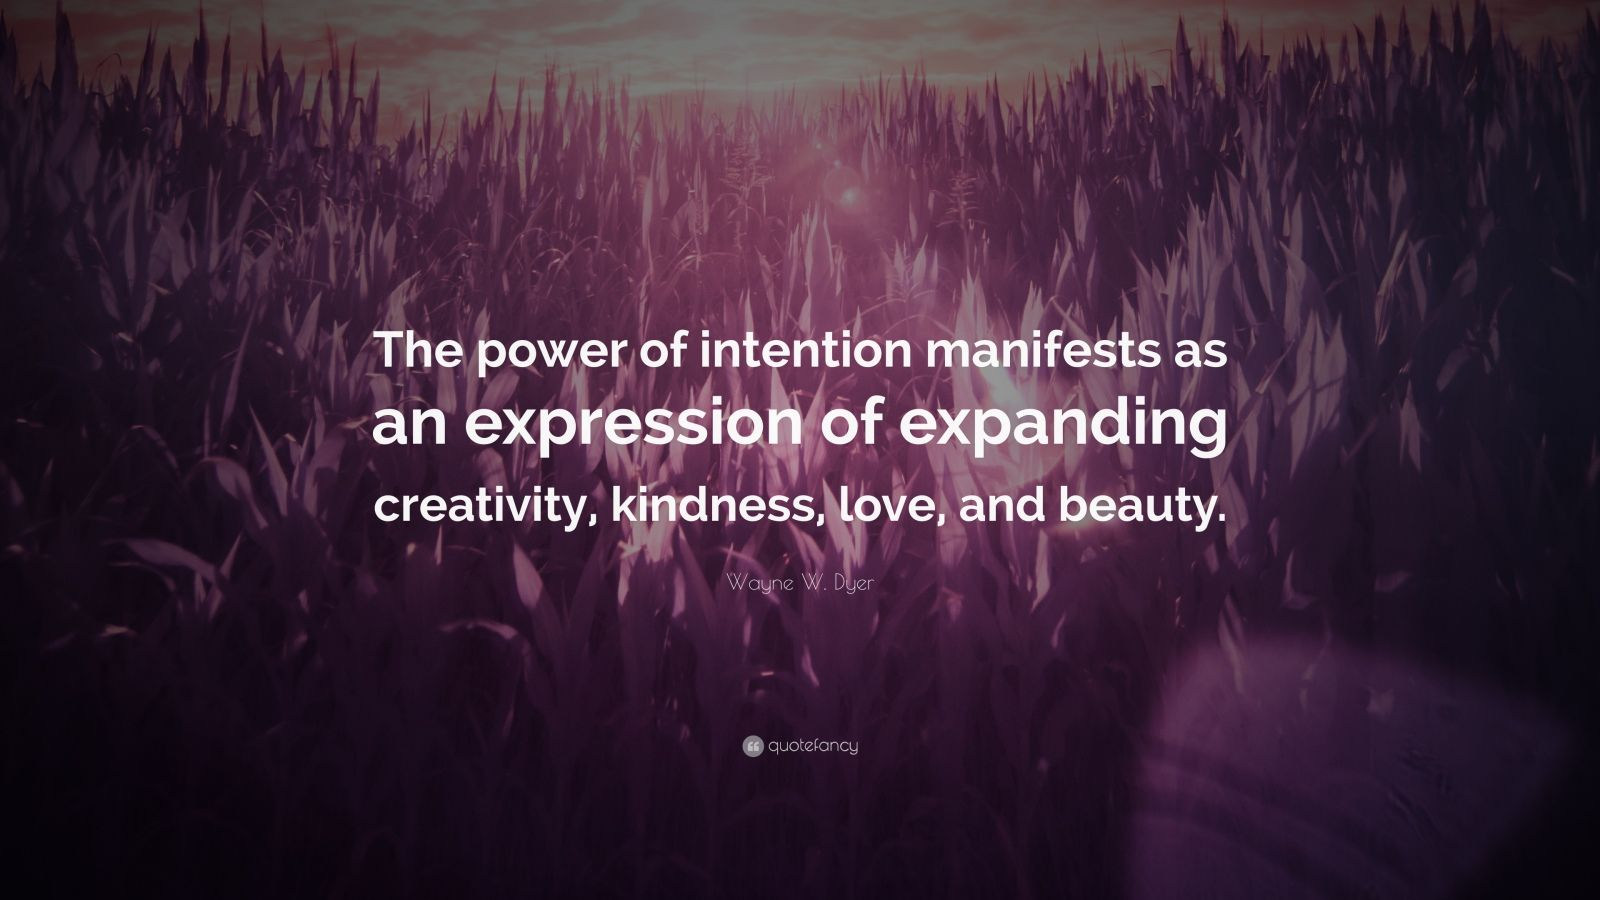 """Wayne W. Dyer Quote: """"The power of intention manifests as an expression of expanding creativity, kindness, love, and beauty."""""""